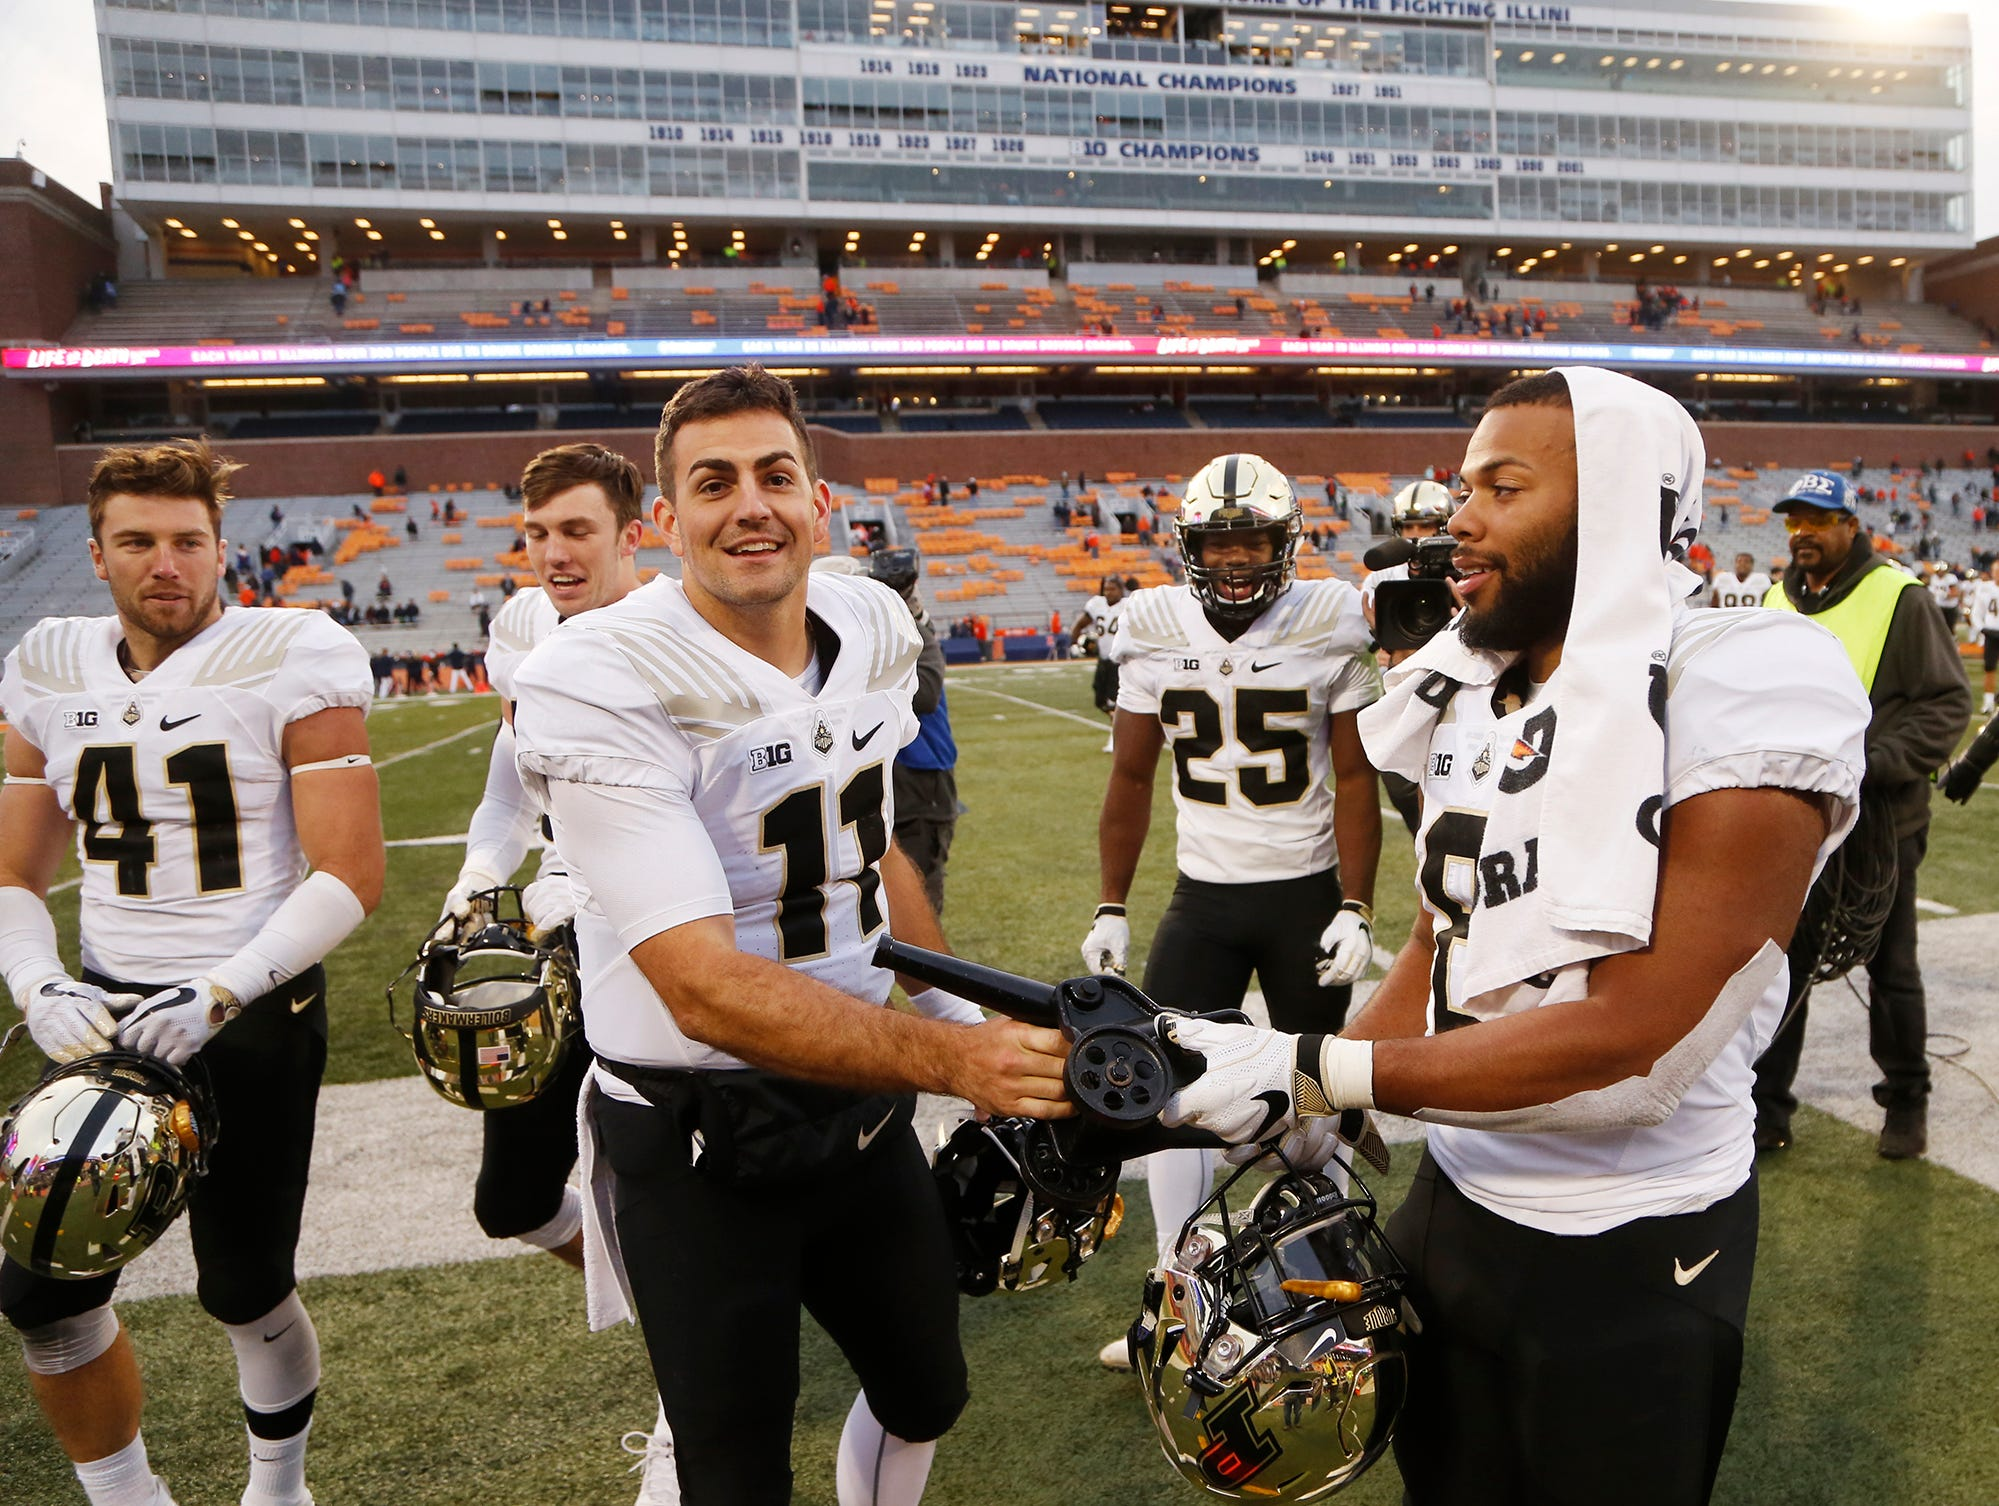 Purdue quarterback David Blough and running back Markell Jones grab The Cannon traveling trophy as they celebrate with their teammates after defeating Illinois 46-7 Saturday, October 13, 2018, in Champaign, Illinois.